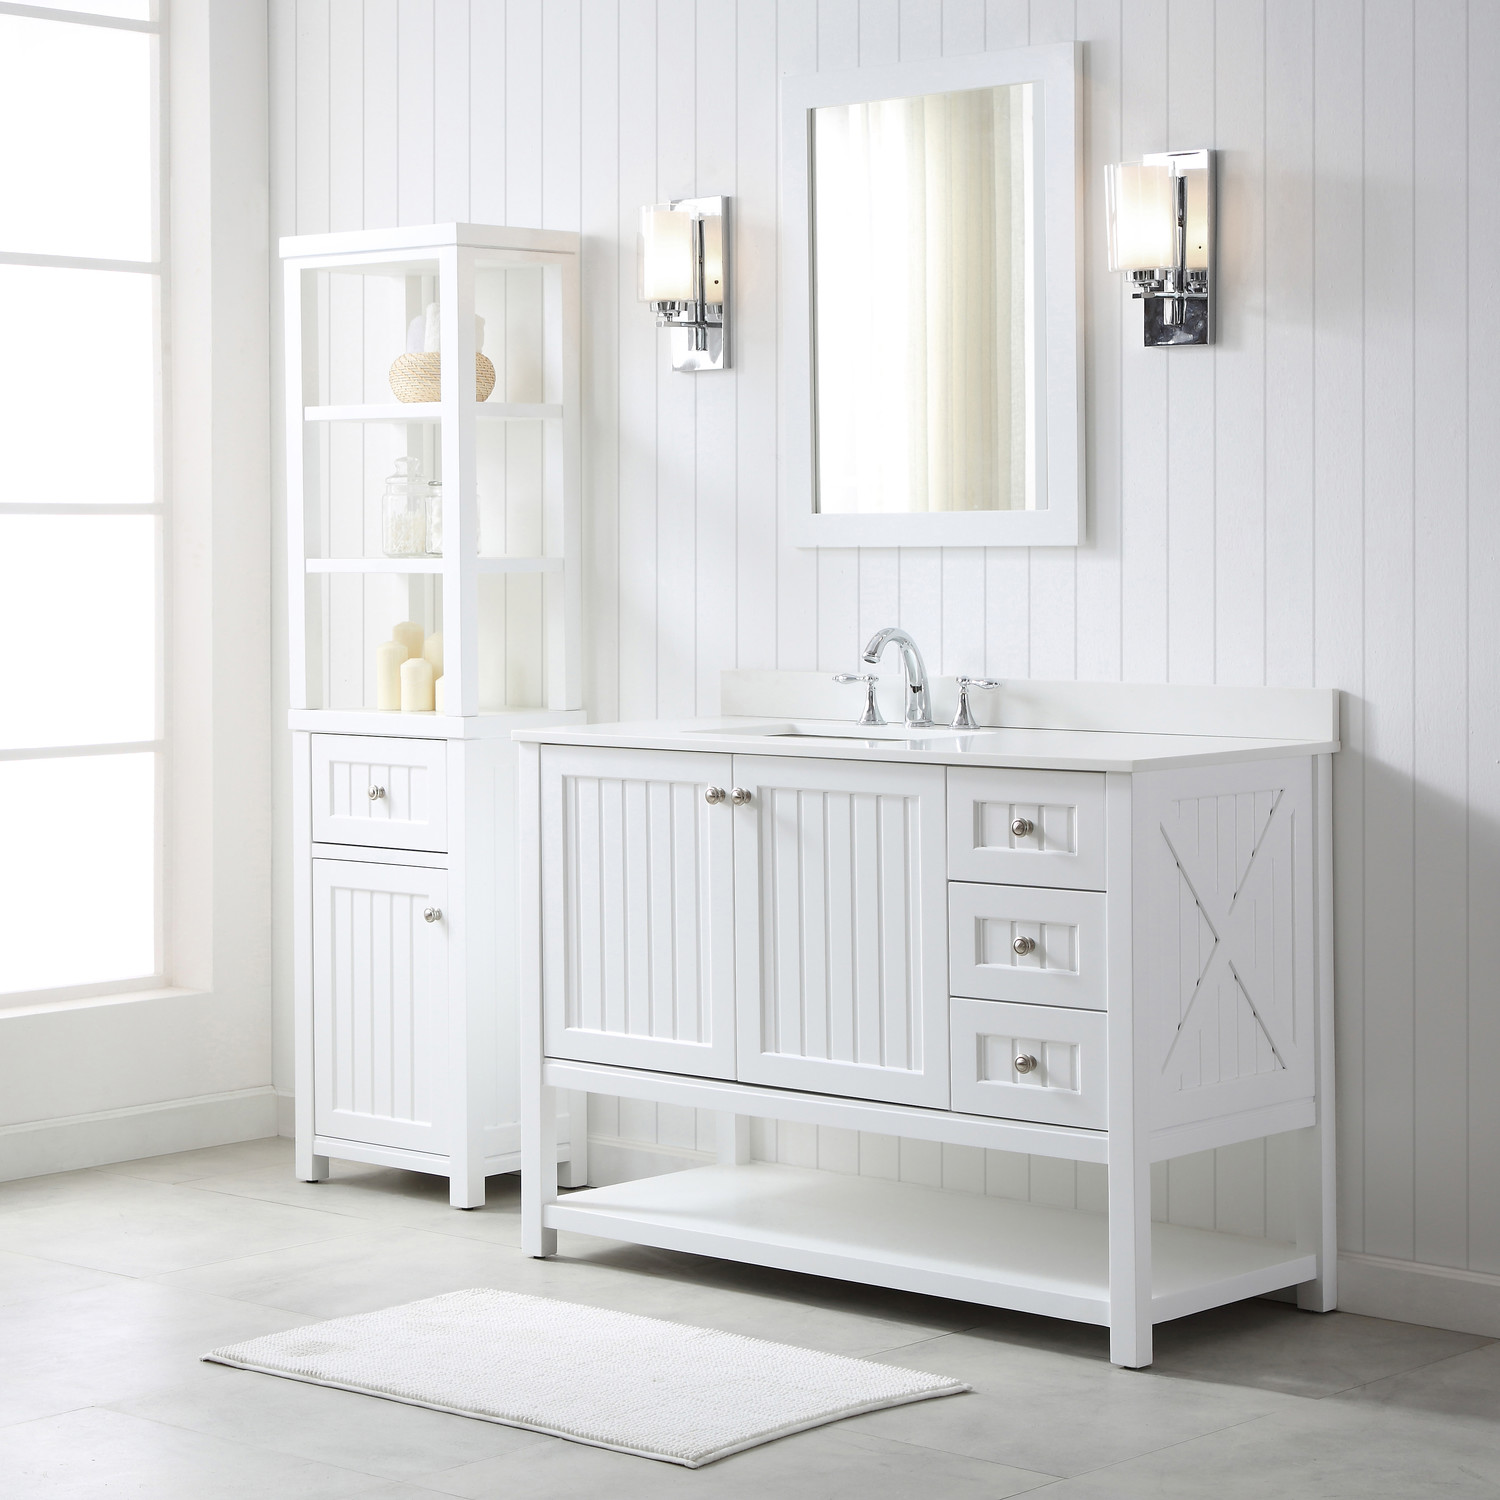 Martha stewart vanity home design ideas and inspiration Martha stewart bathroom collection